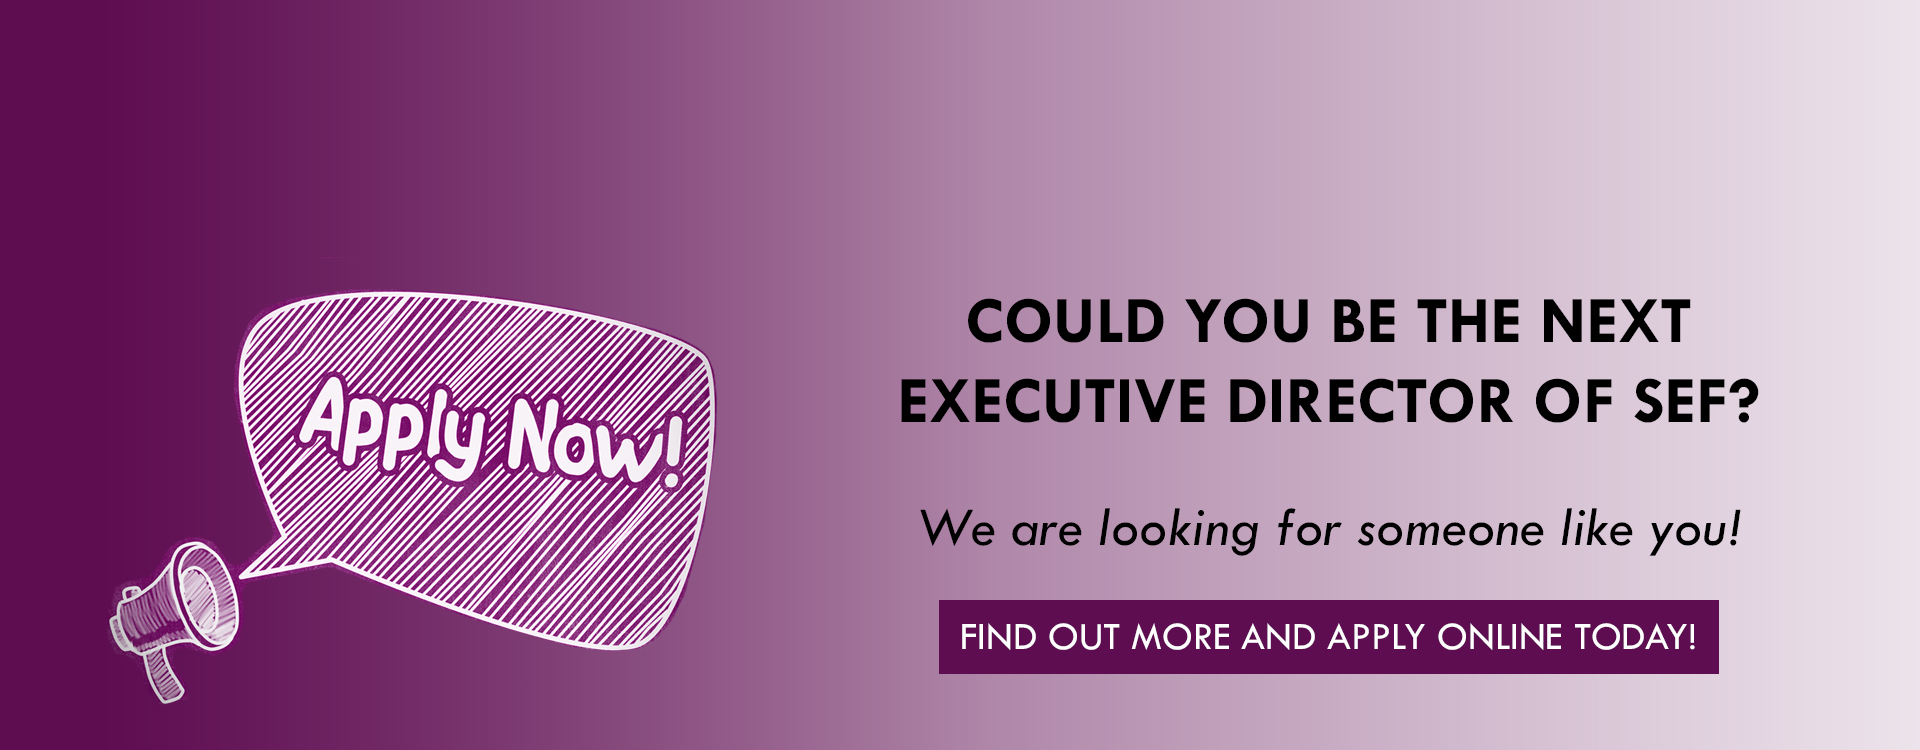 SEF is hiring for an executive director! Apply today!